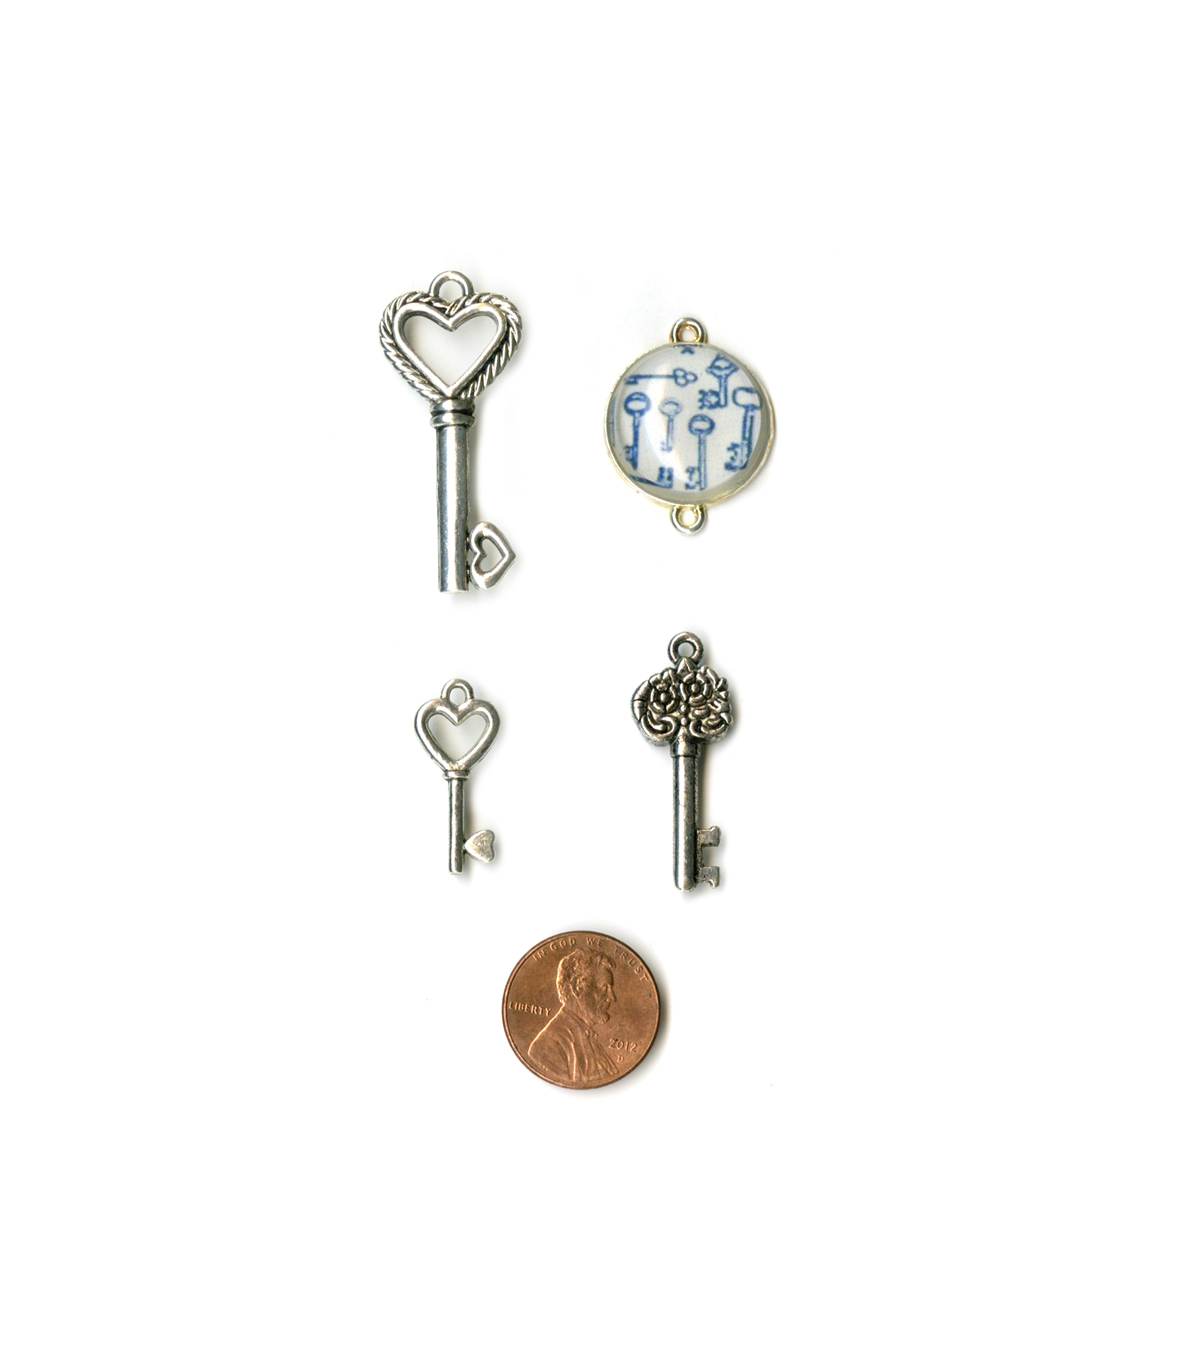 Blue Moon Beads Metal Charms Range: 23x10mm to 39x17mm, Keys, Silver